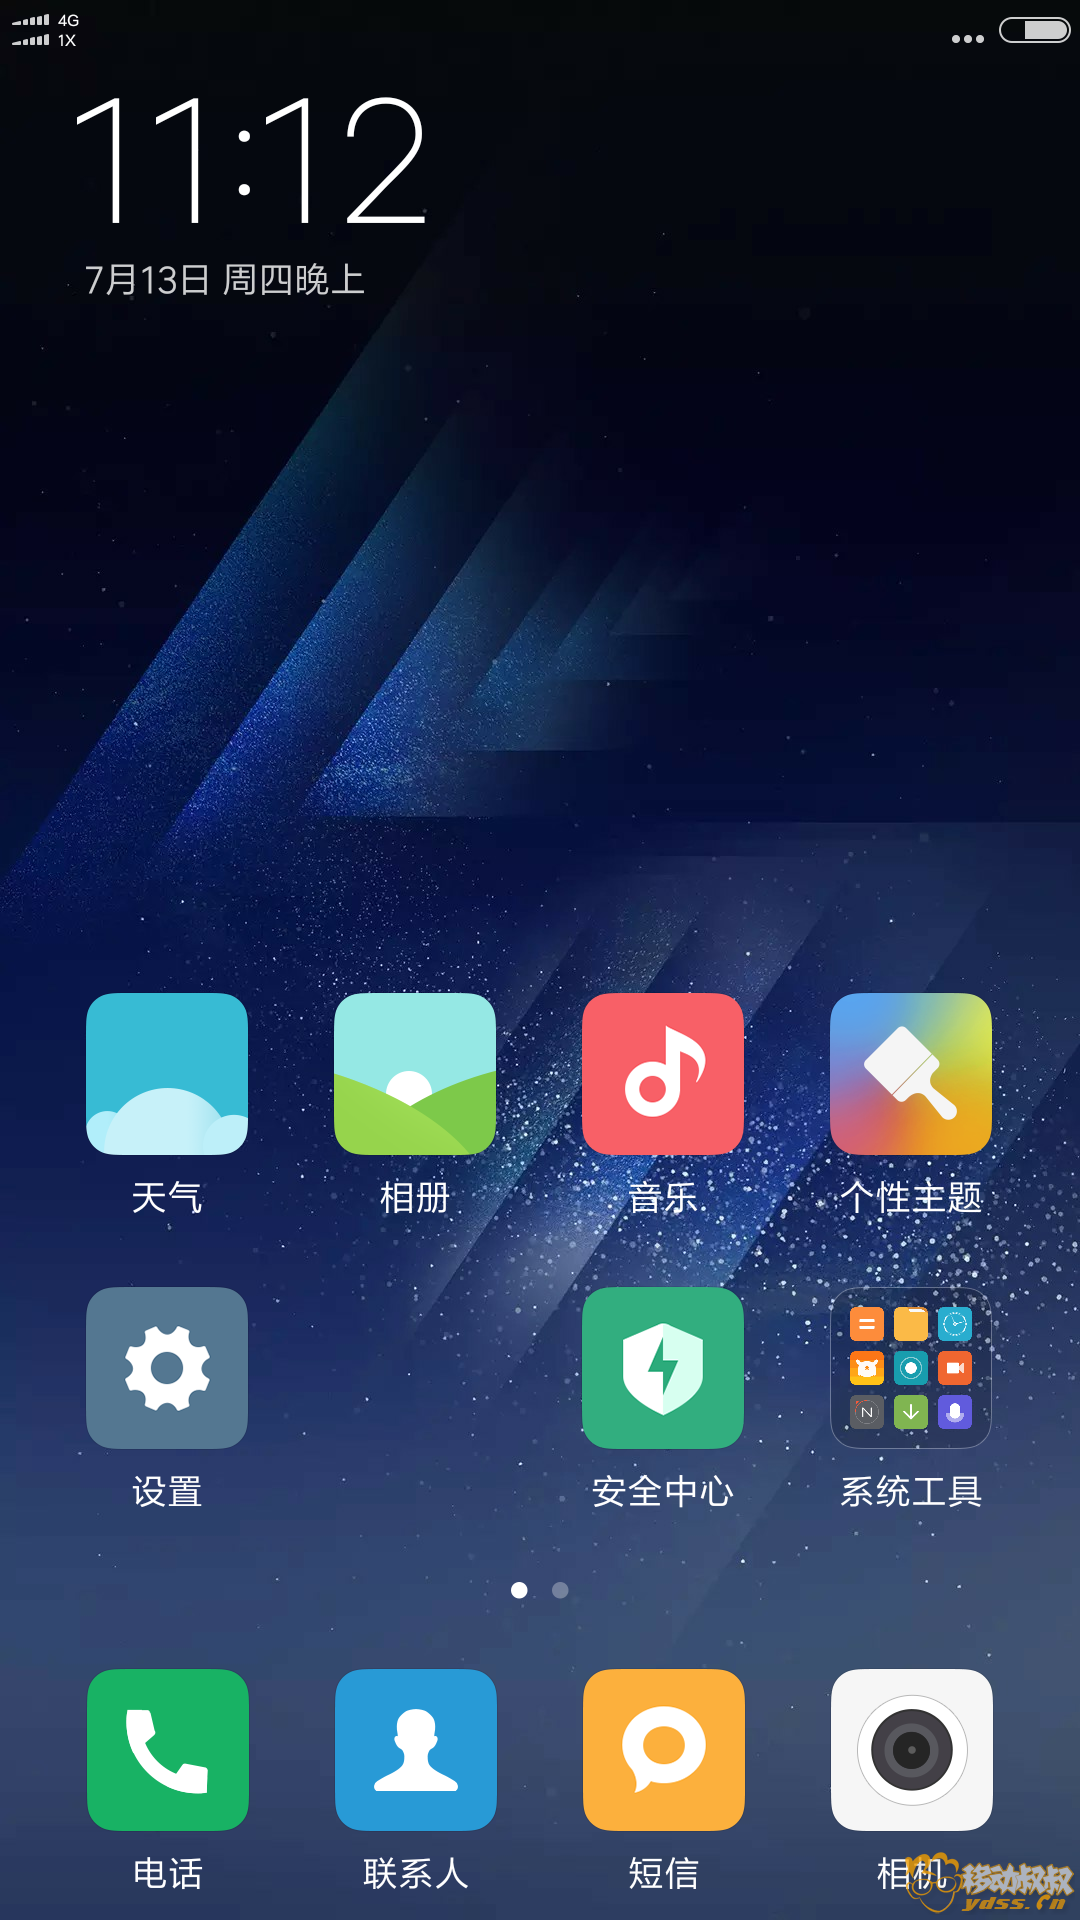 Screenshot_2017-07-13-23-12-39-349_com.miui.home.png